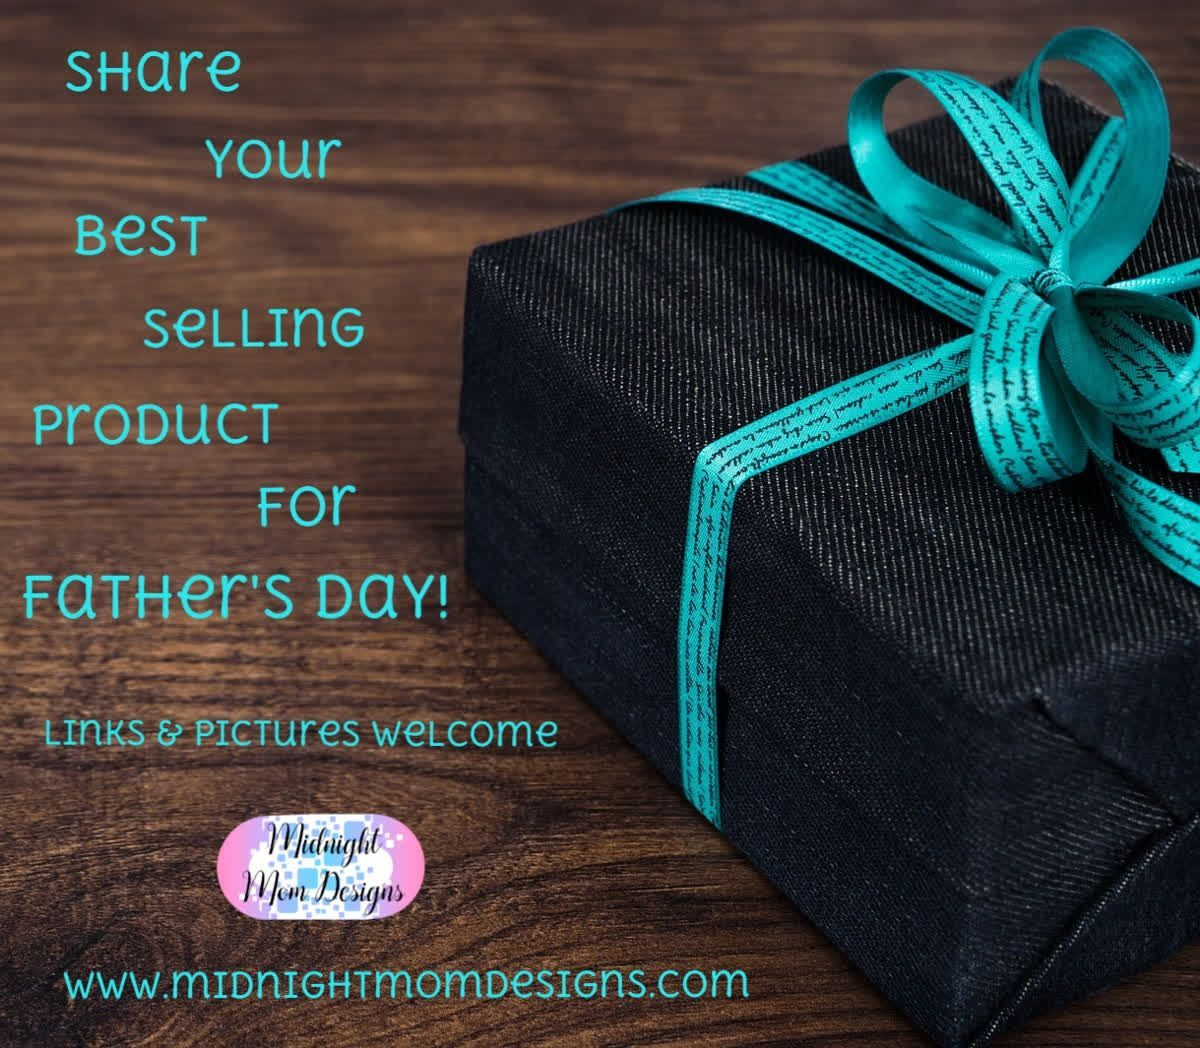 Father's day is less than 2 weeks away! Share with me!  www.midnightmomdesigns.com  #sharingiscaring #advertise #tellmeaboutit #shareit #bestproduct #fathersday #dad #business #focus #getstarted #goals #midnightmomdesigns#custom #SEO #SSL #standout #success #web #webdesign #webdesigner #website #websitedesign #websites #yougotthis #fathersday advertising